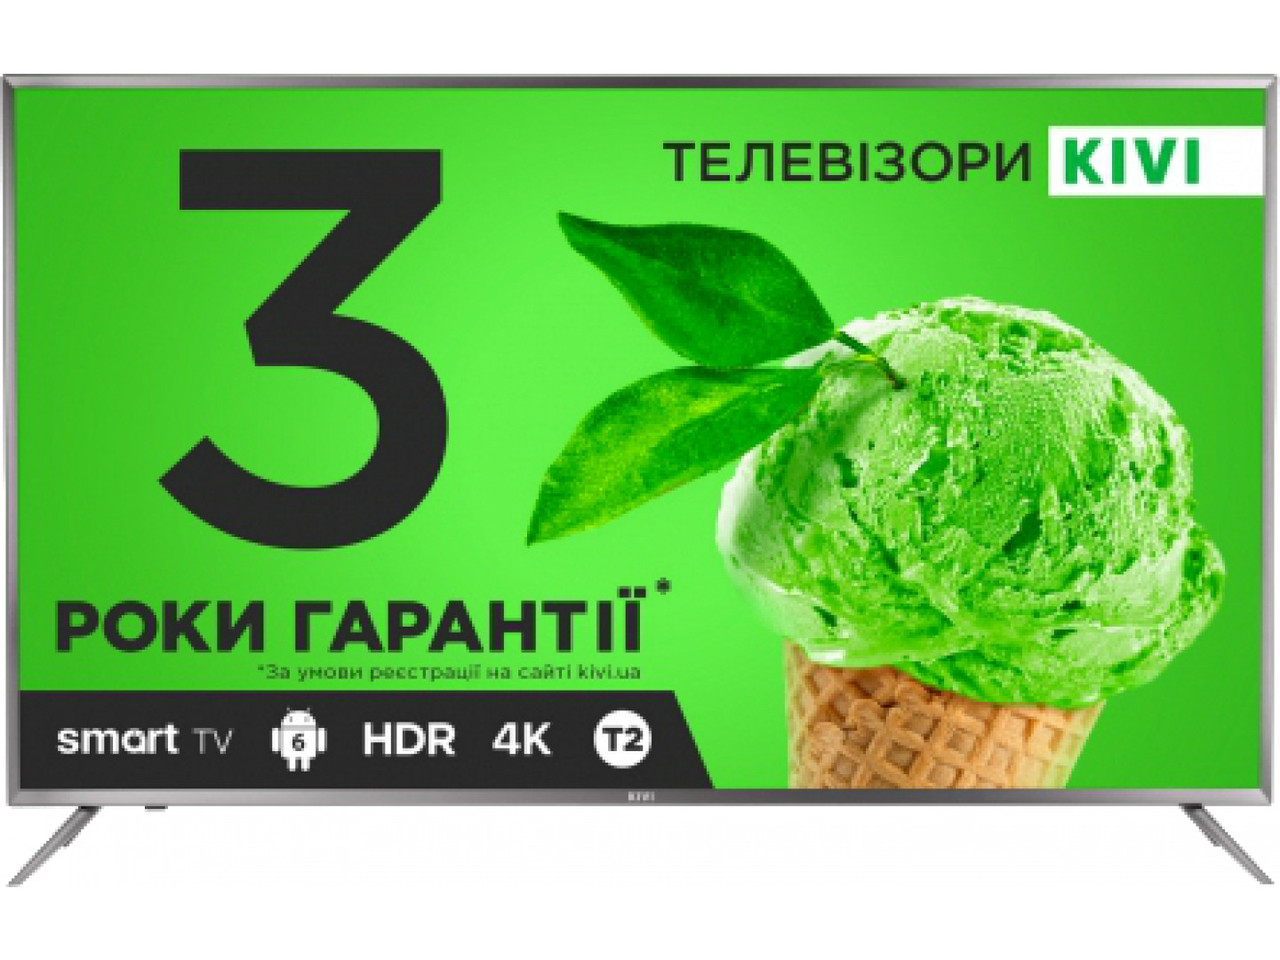 Телевізор LED Kivi 50UK32G